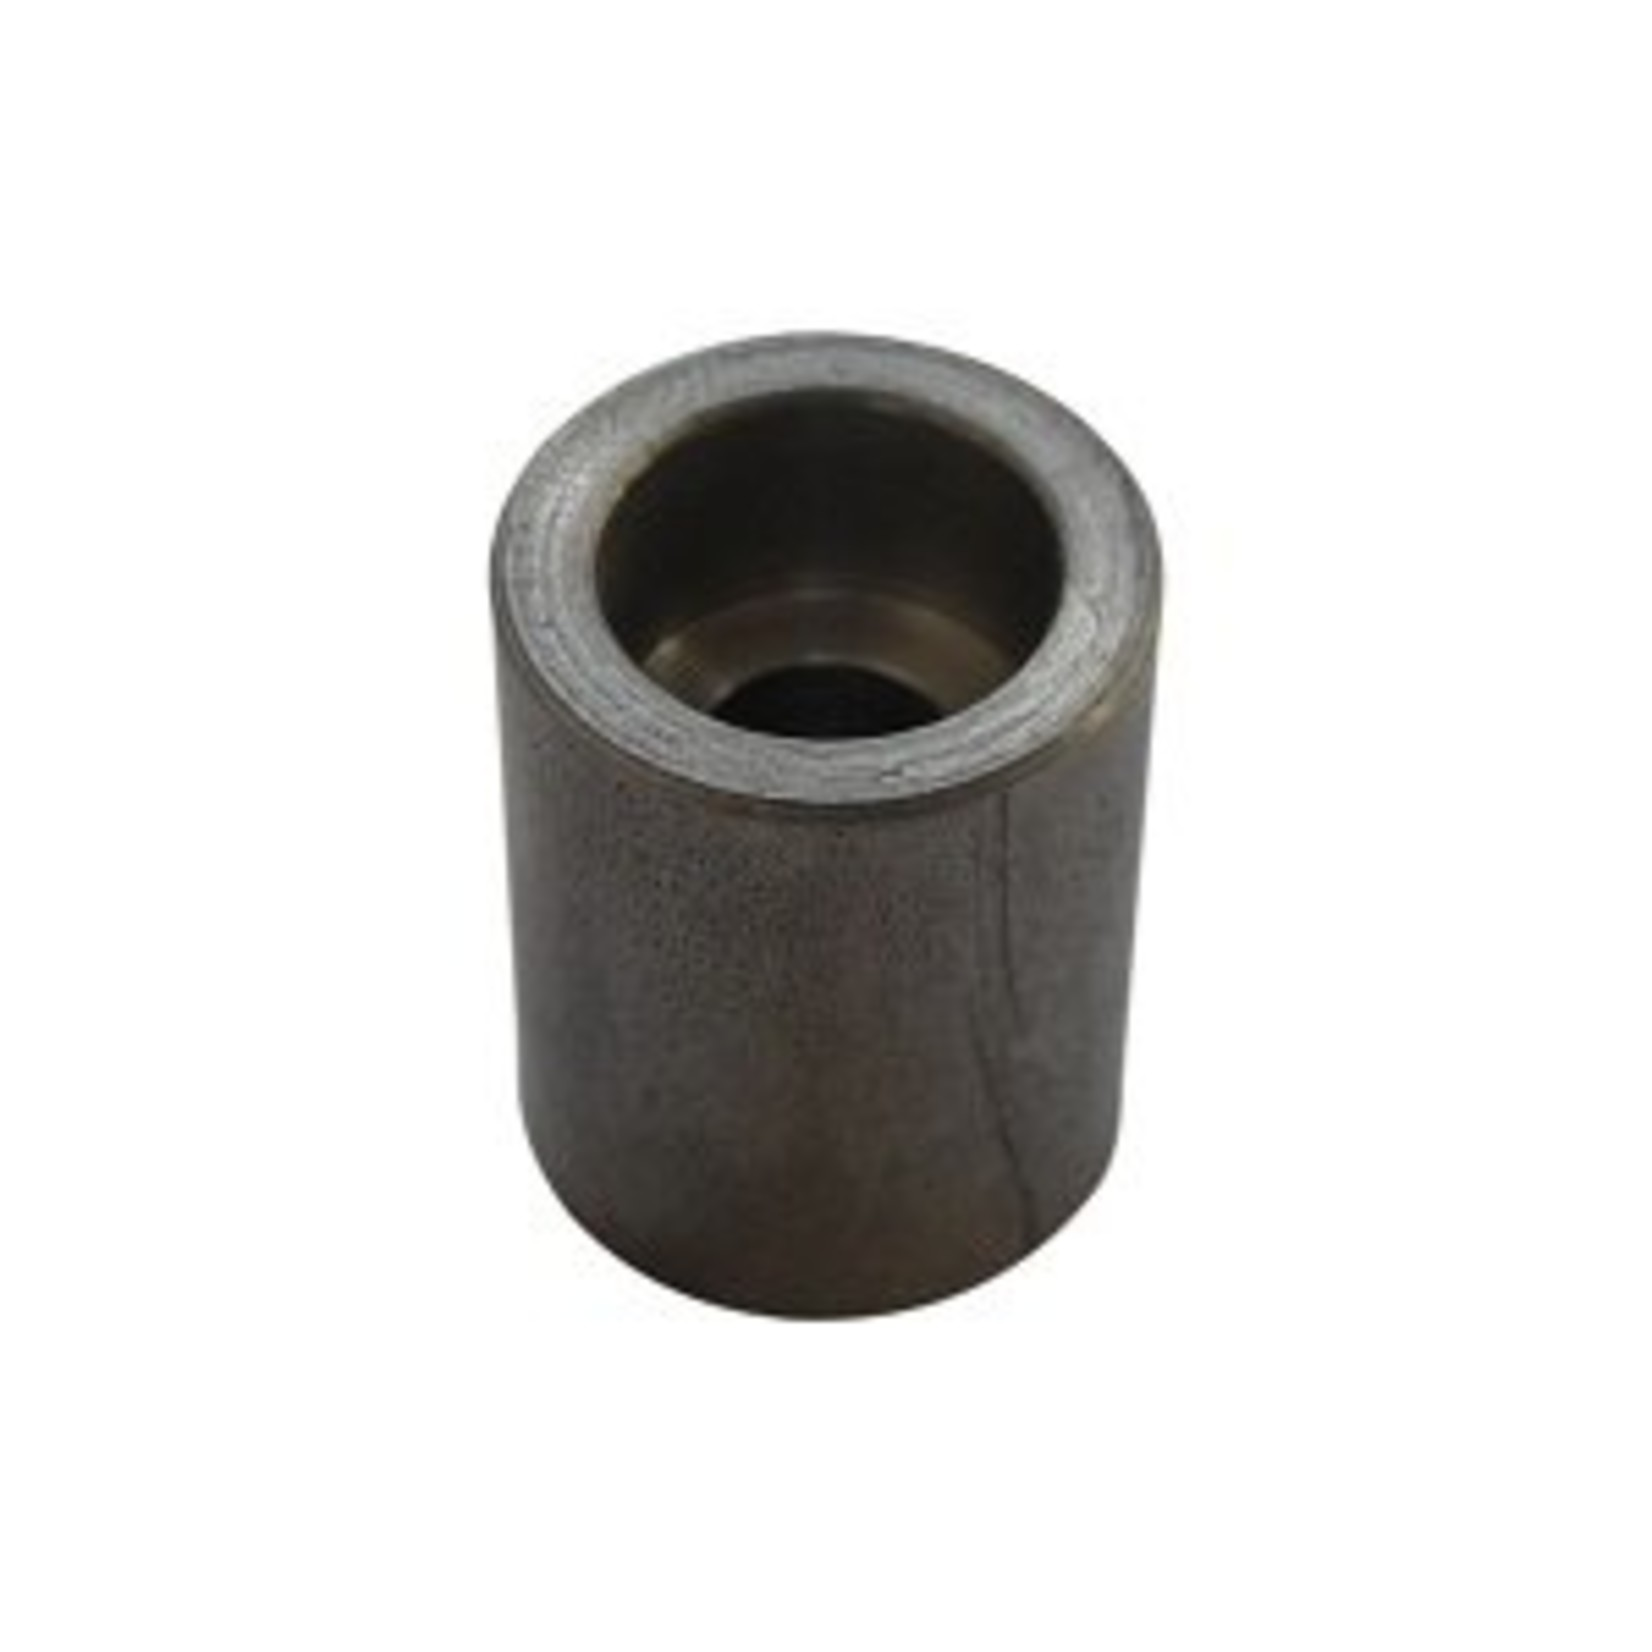 Bung 6mm Counterbored L=20